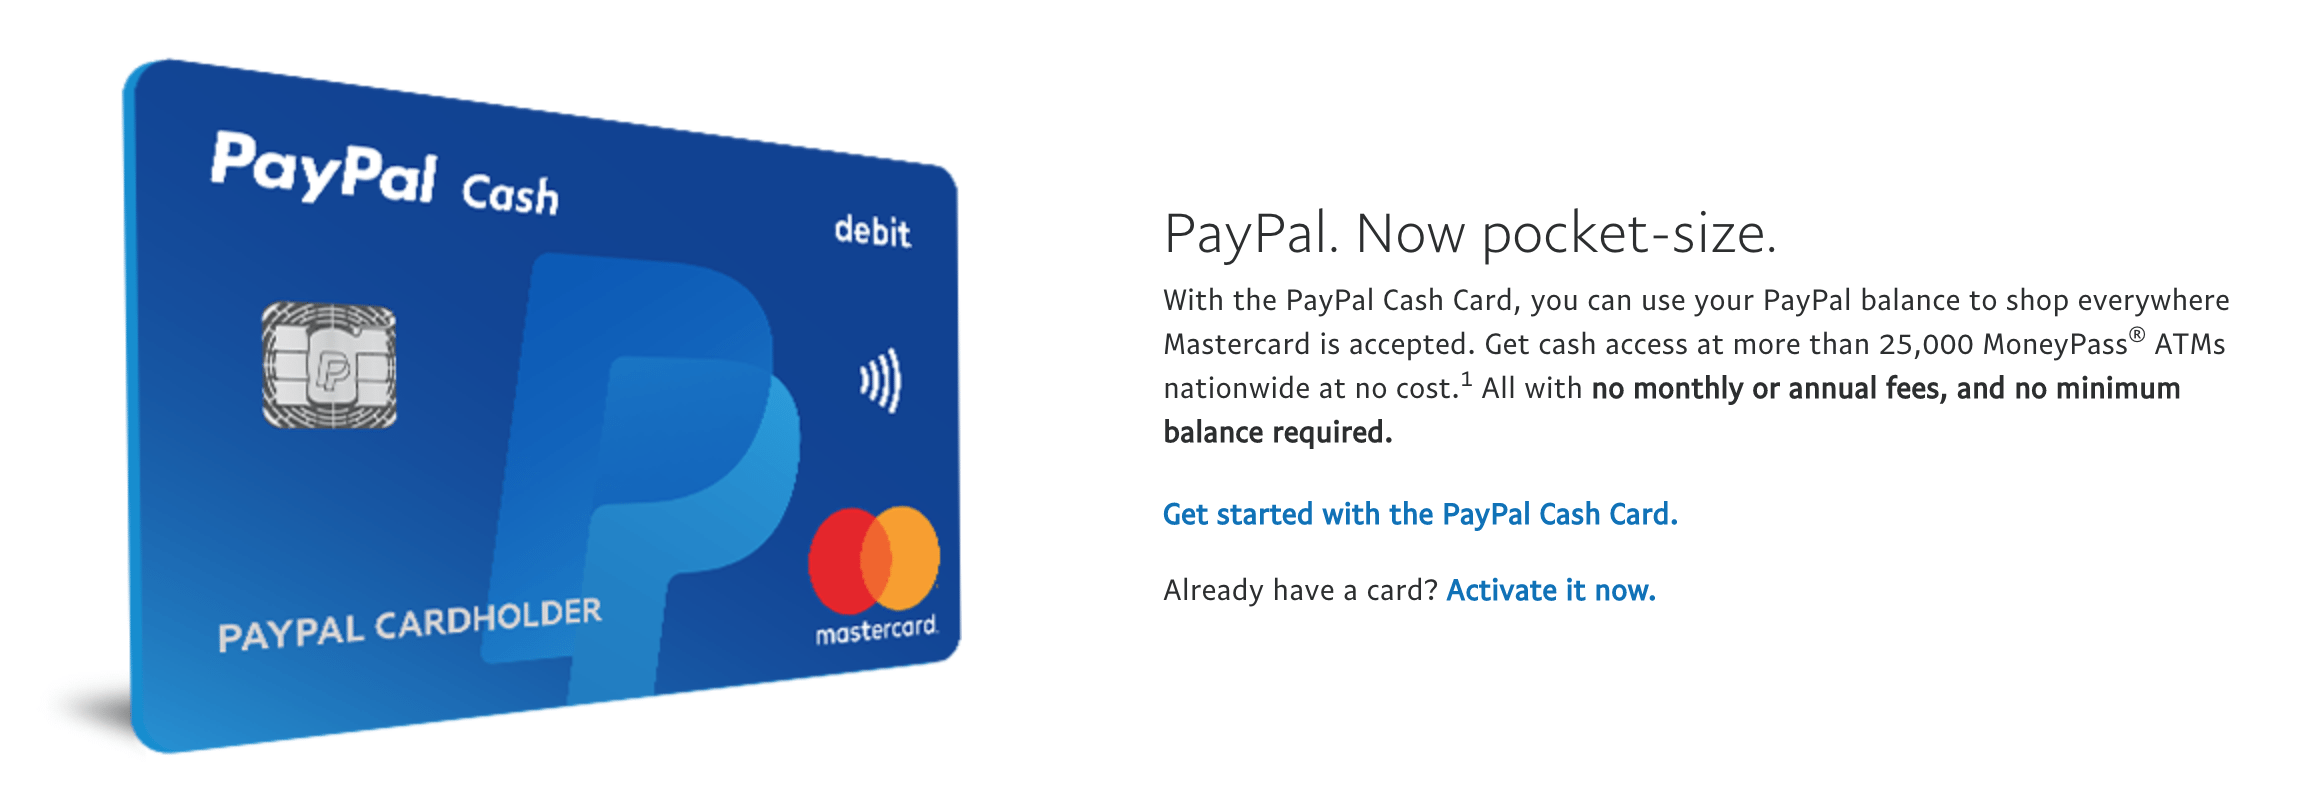 paypal releases new debit card with no monthly fees - doctor of credit